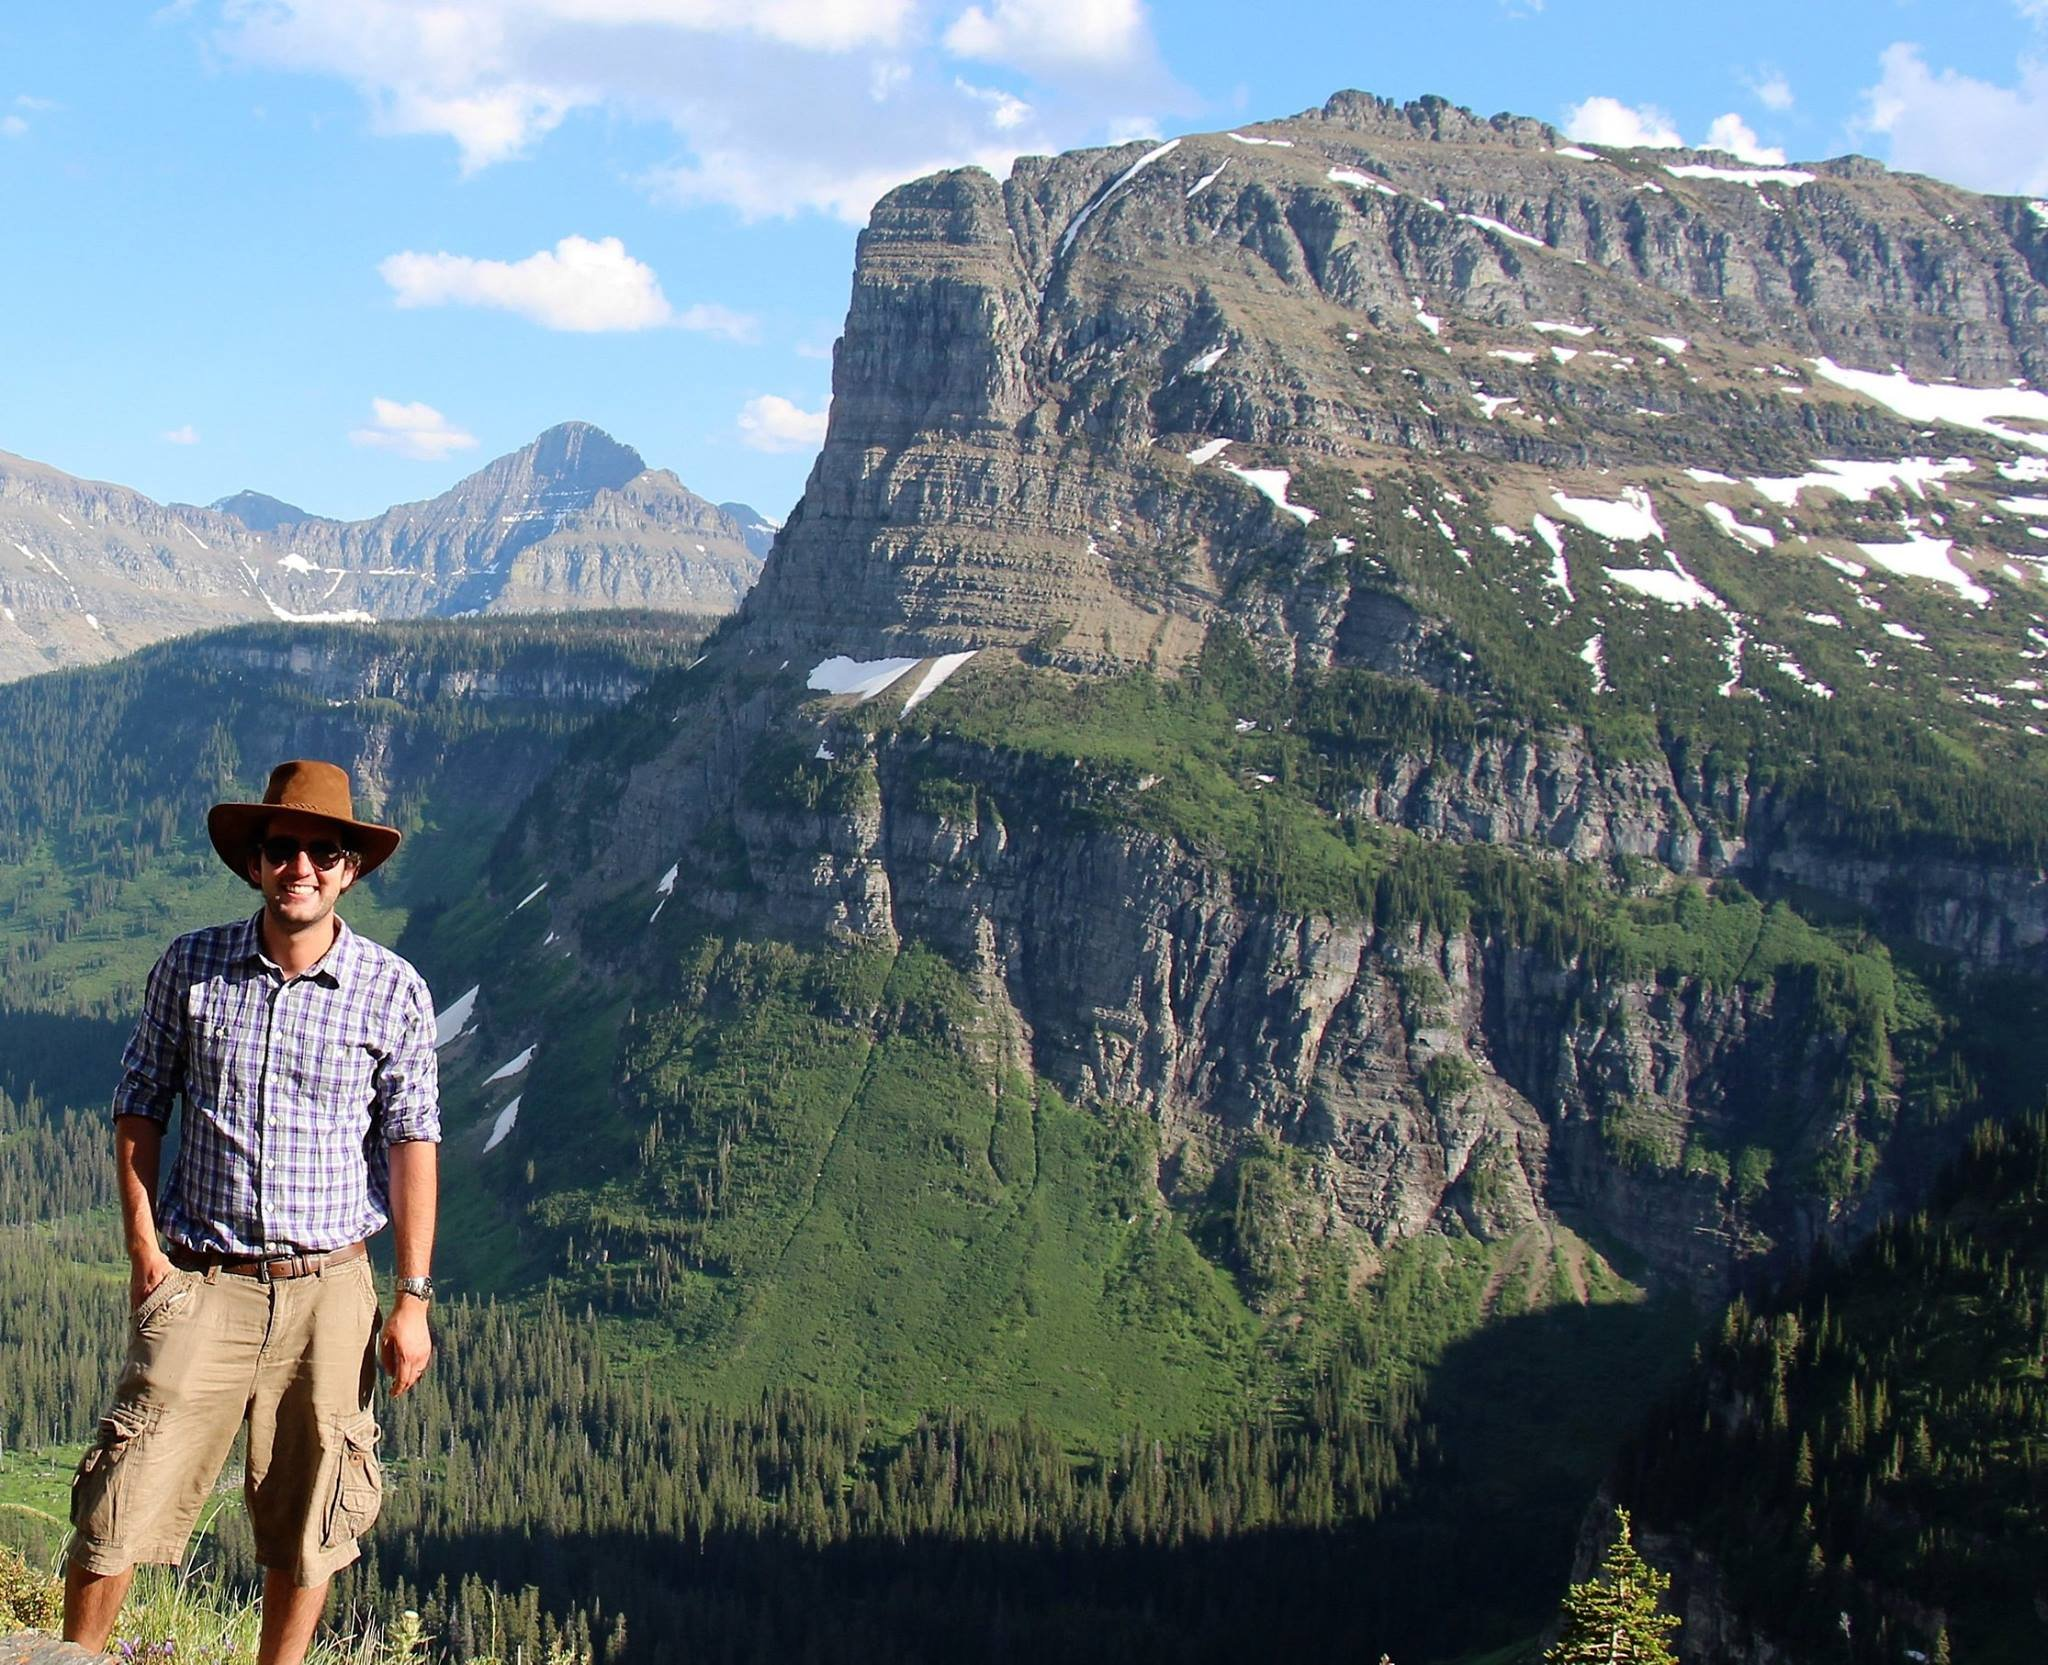 Geographer of the month: Nick Ferguson